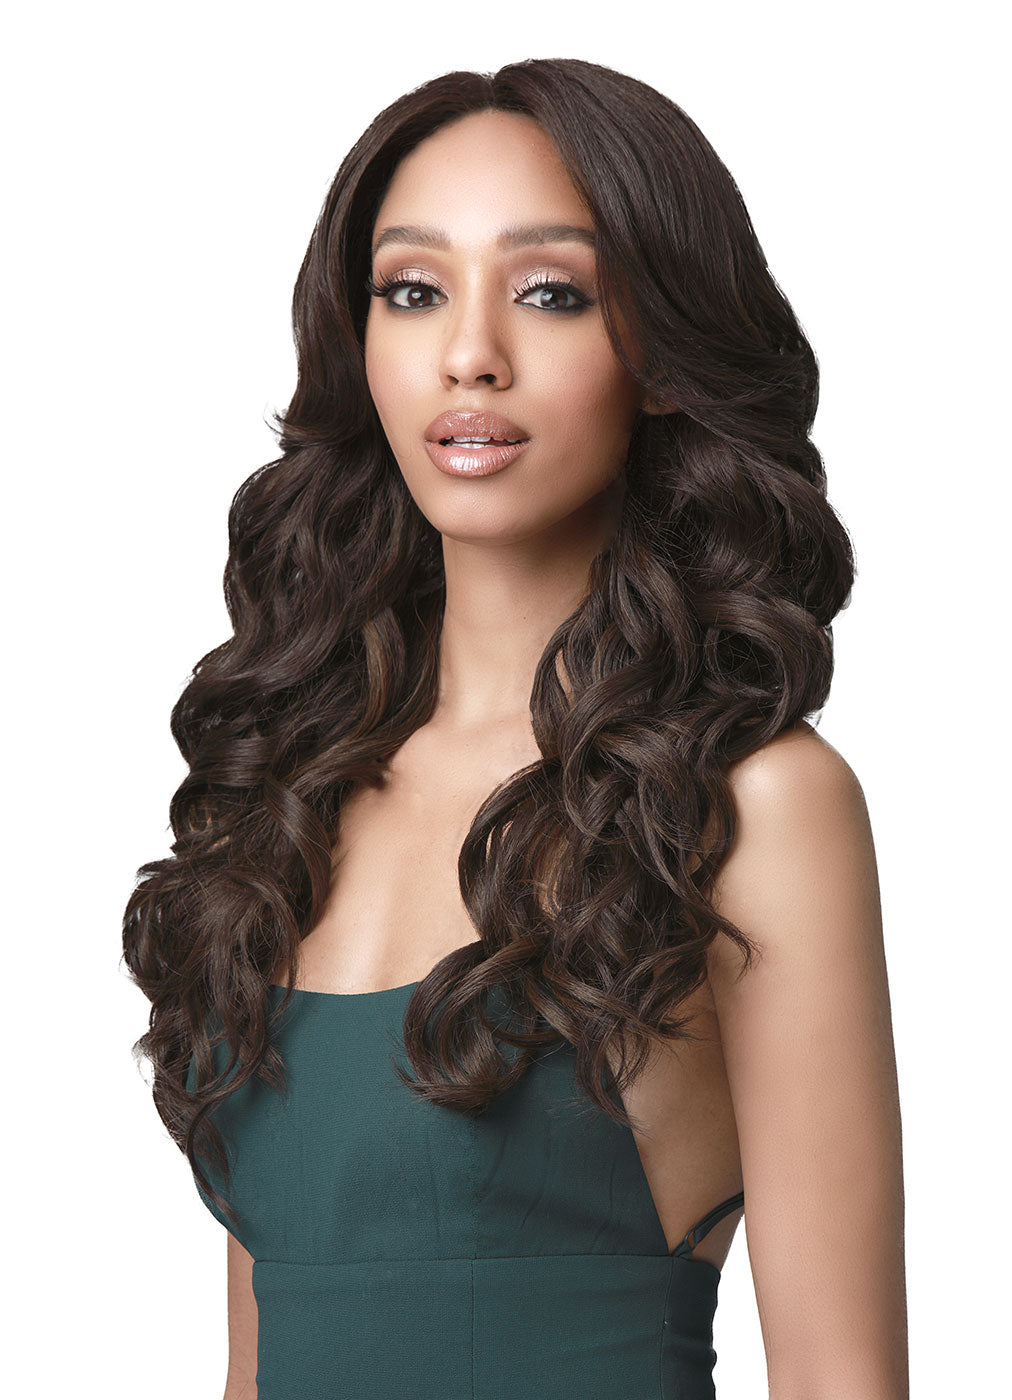 Bobbi Boss Truly Me Premium Synthetic Wig LF425 ANDRINA